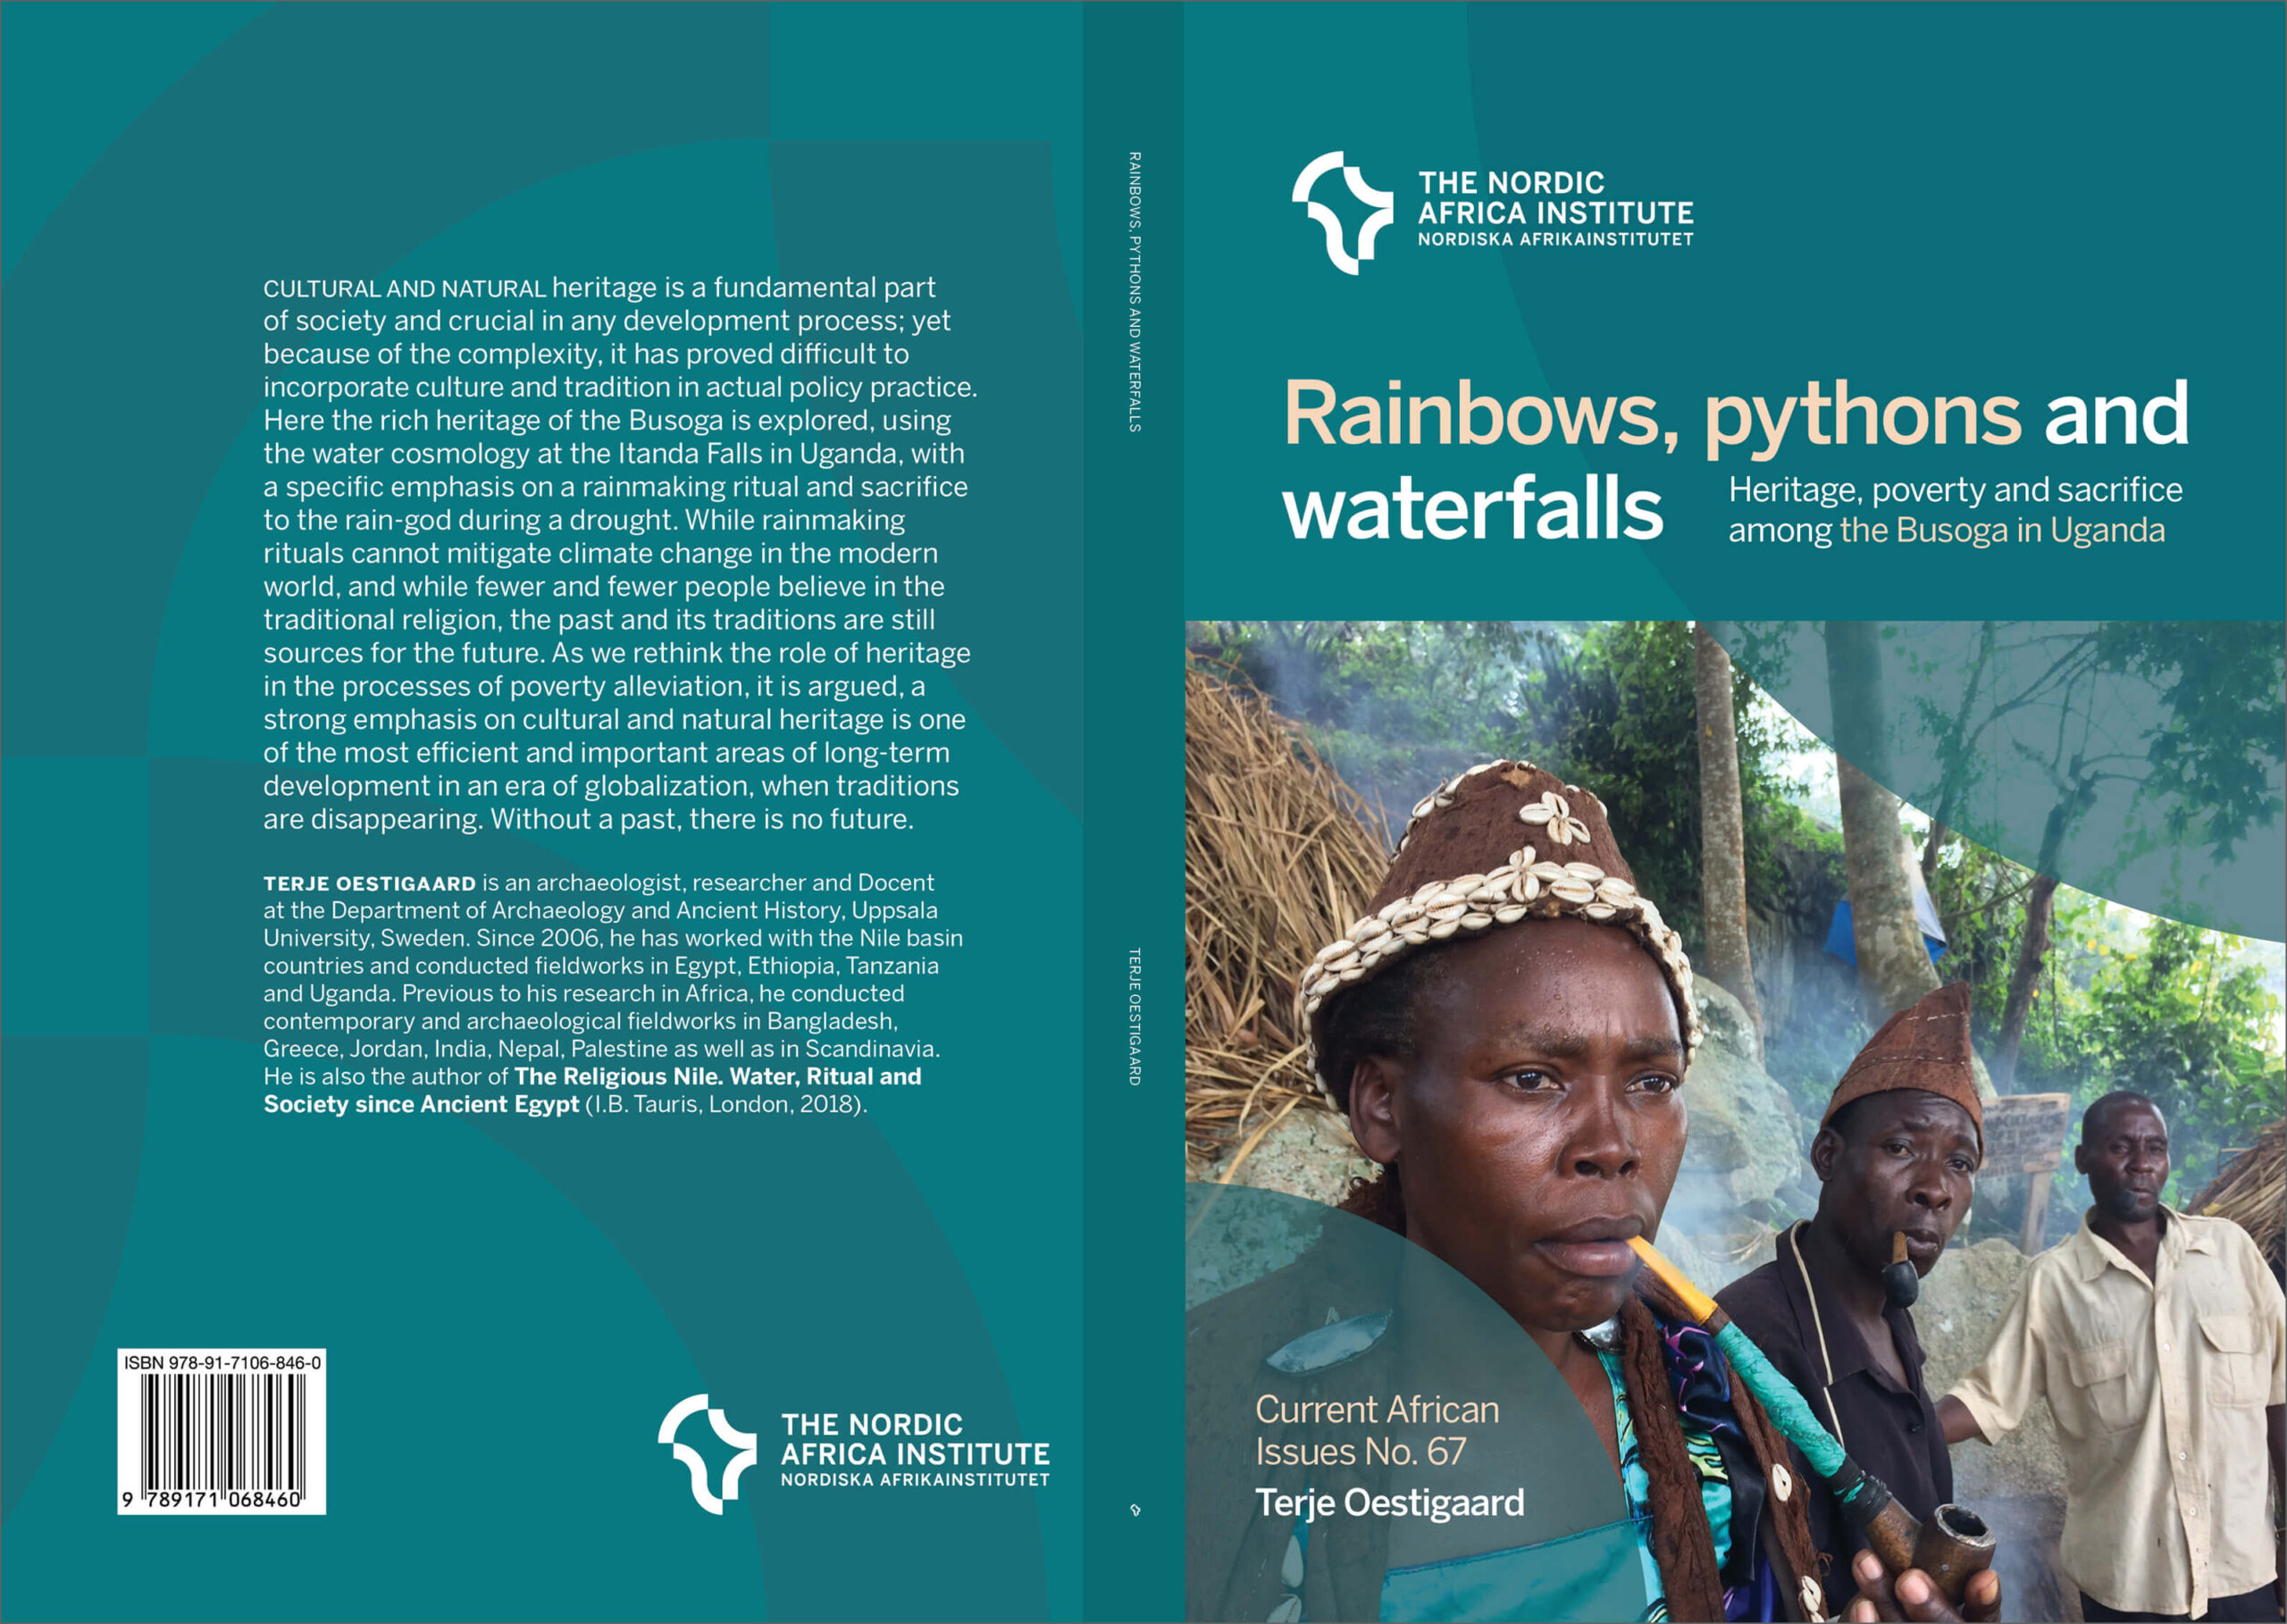 Rainbows, pythons and waterfalls, bok